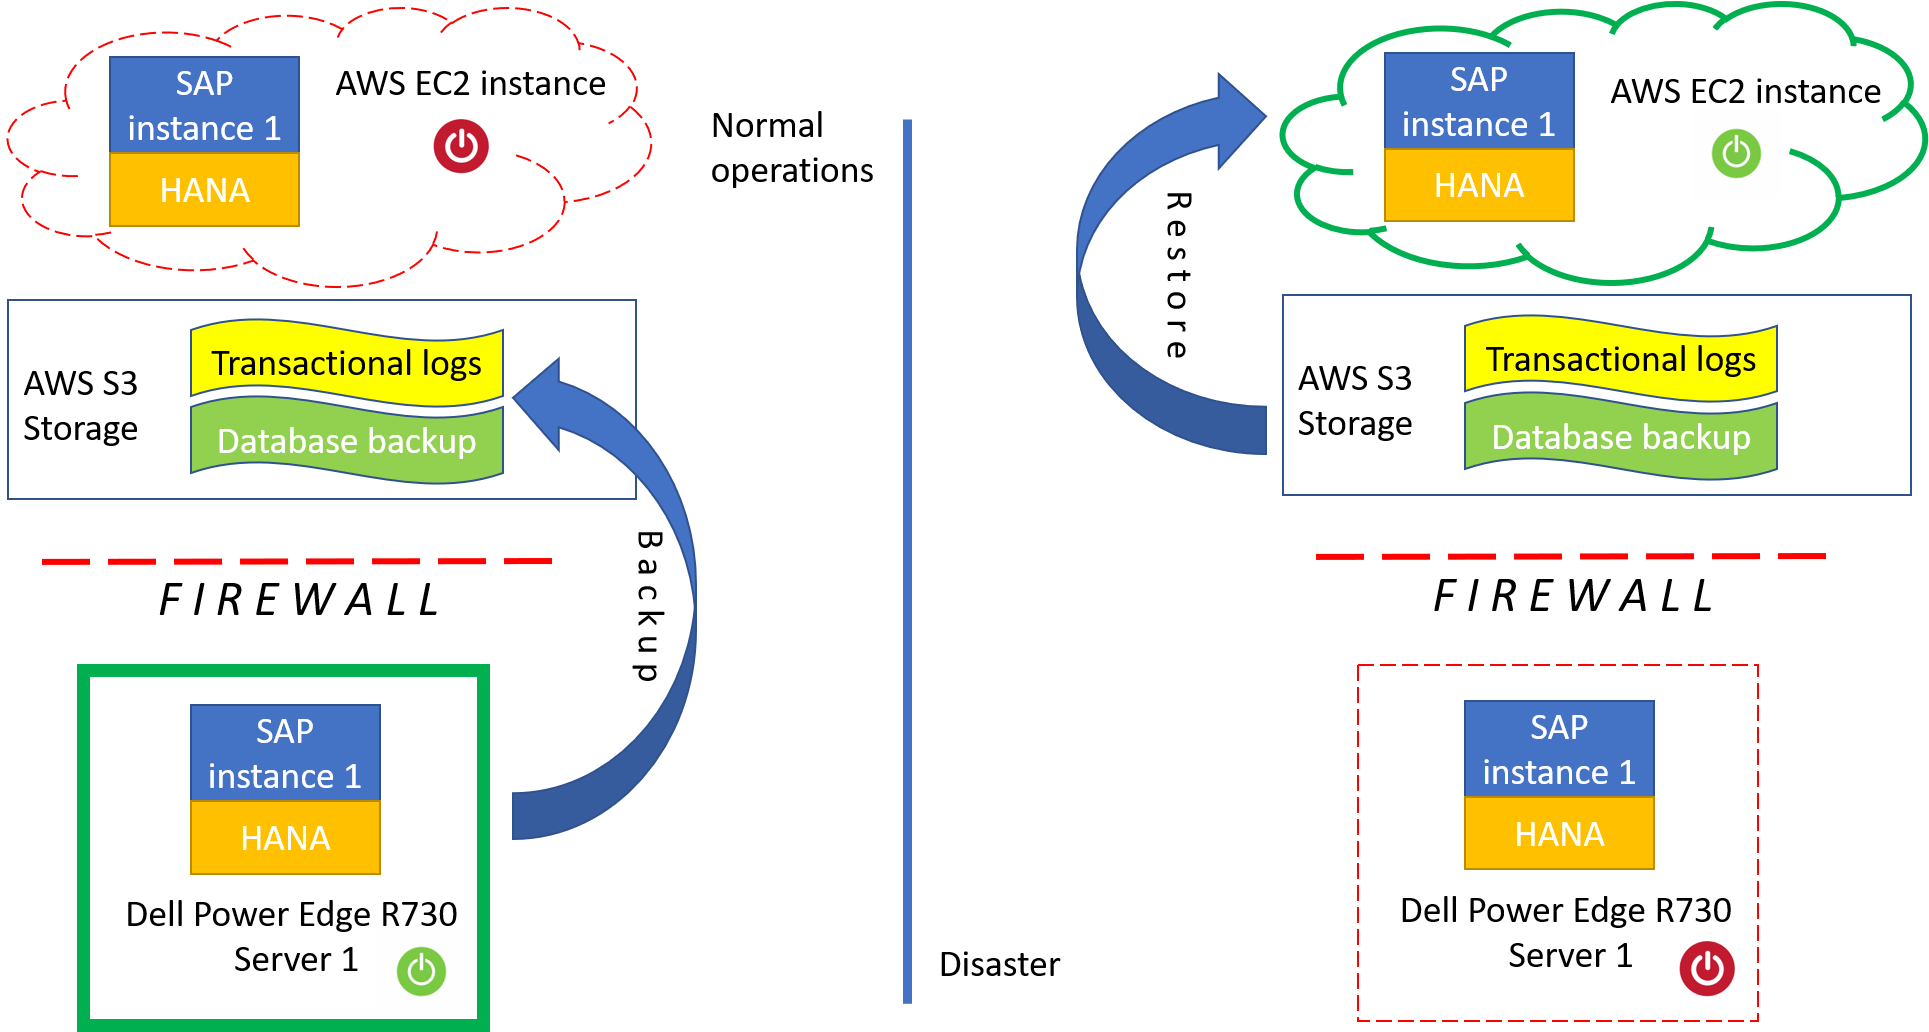 sap_landscape_disaster_recovery_aws_ec2